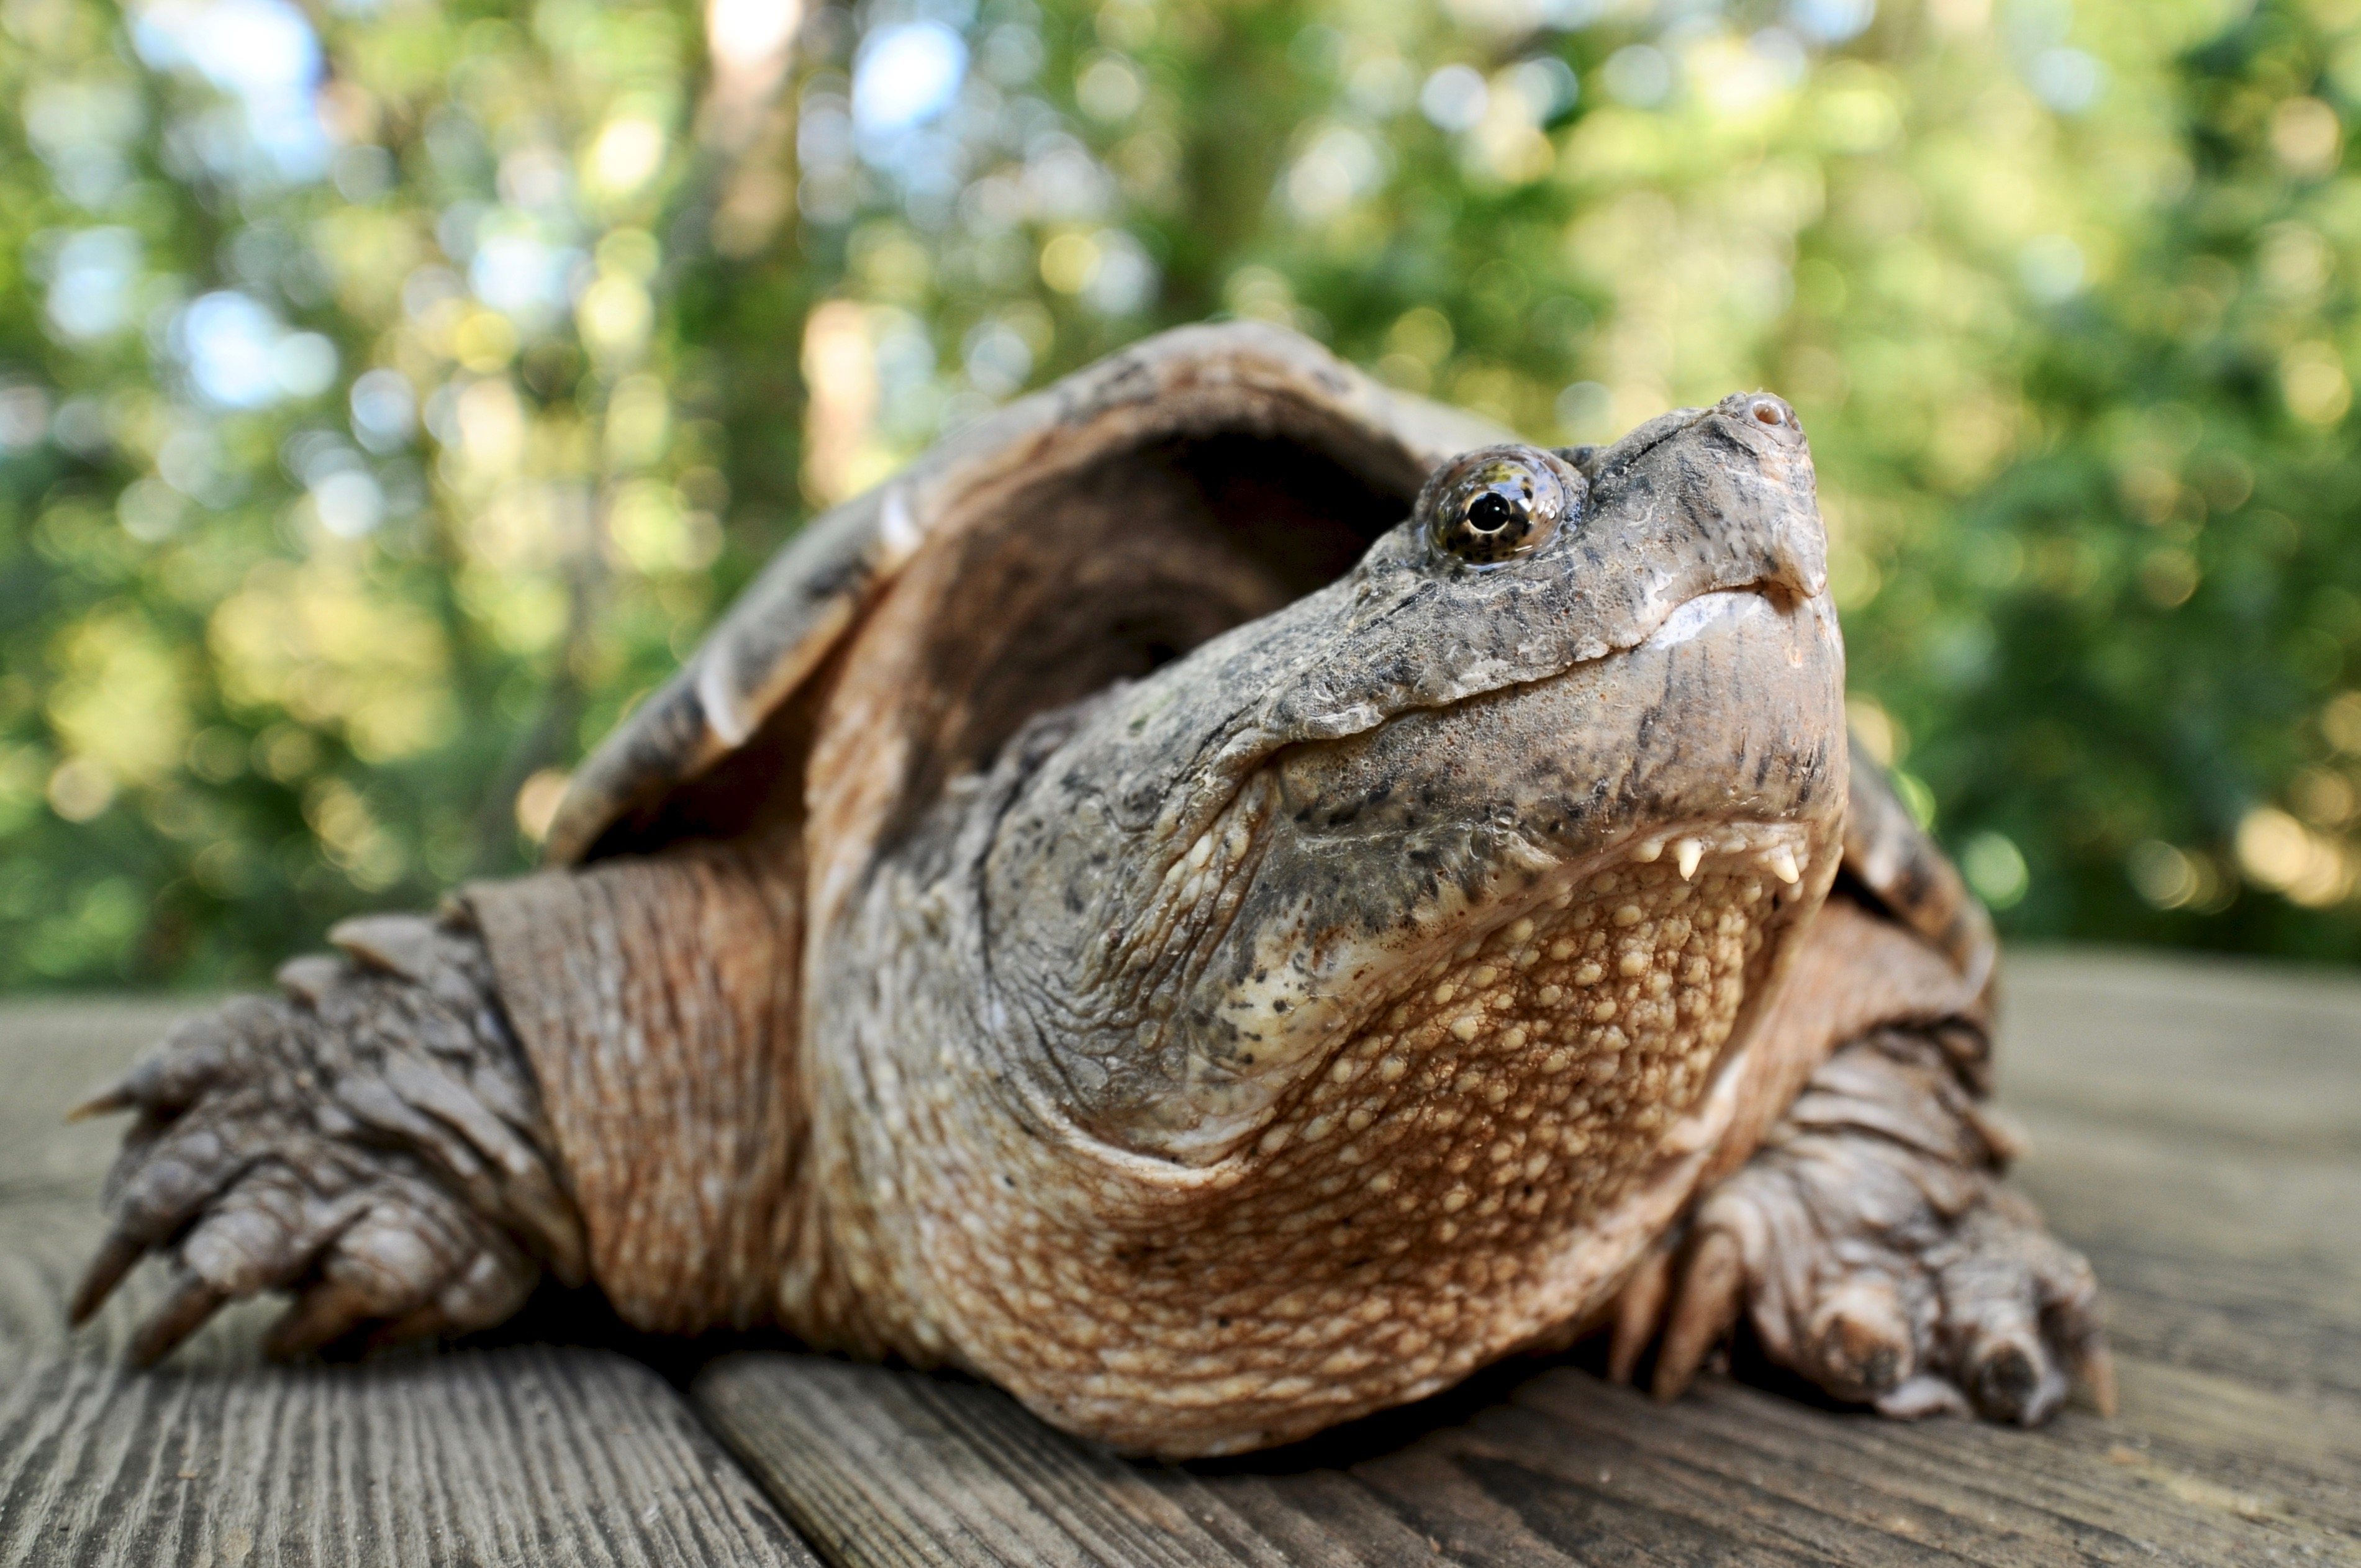 Common Snapping Turtle 133